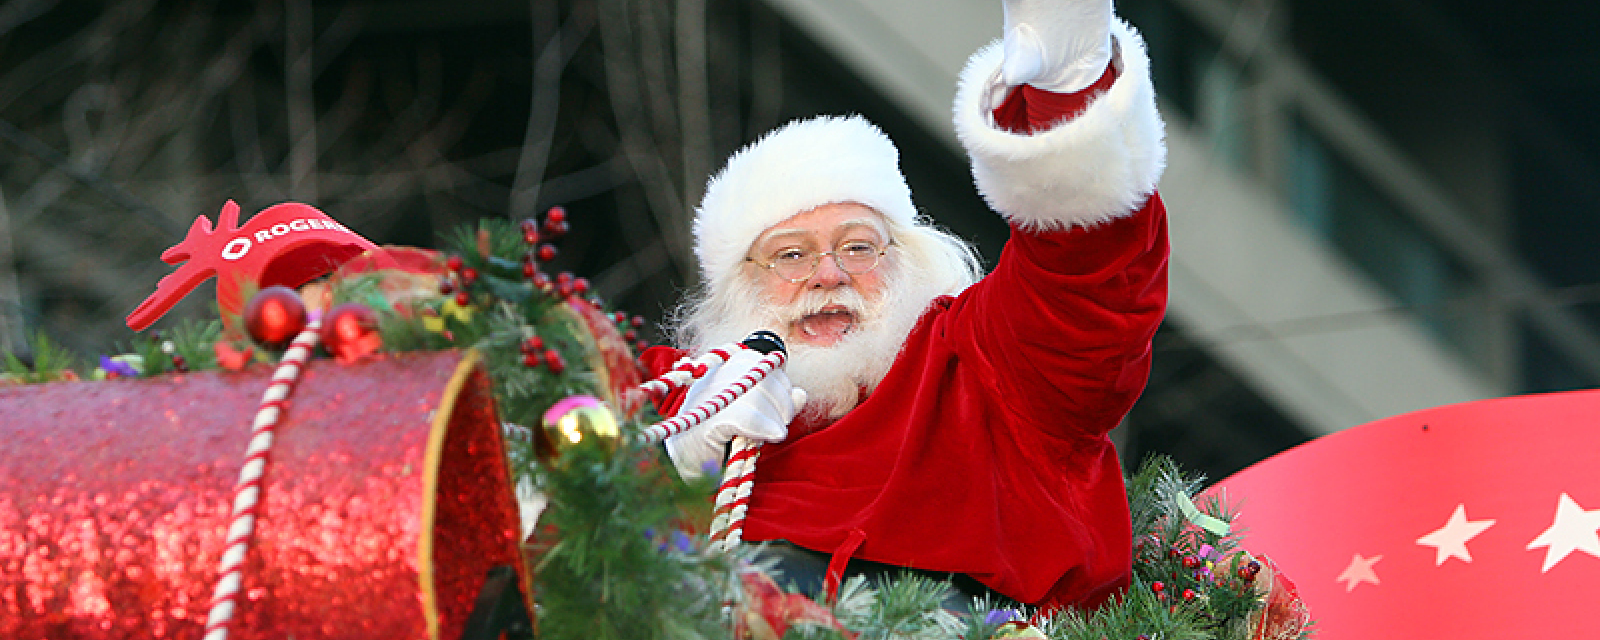 Russell Springs Christmas Parade - Things To Do | Official Visitor ...